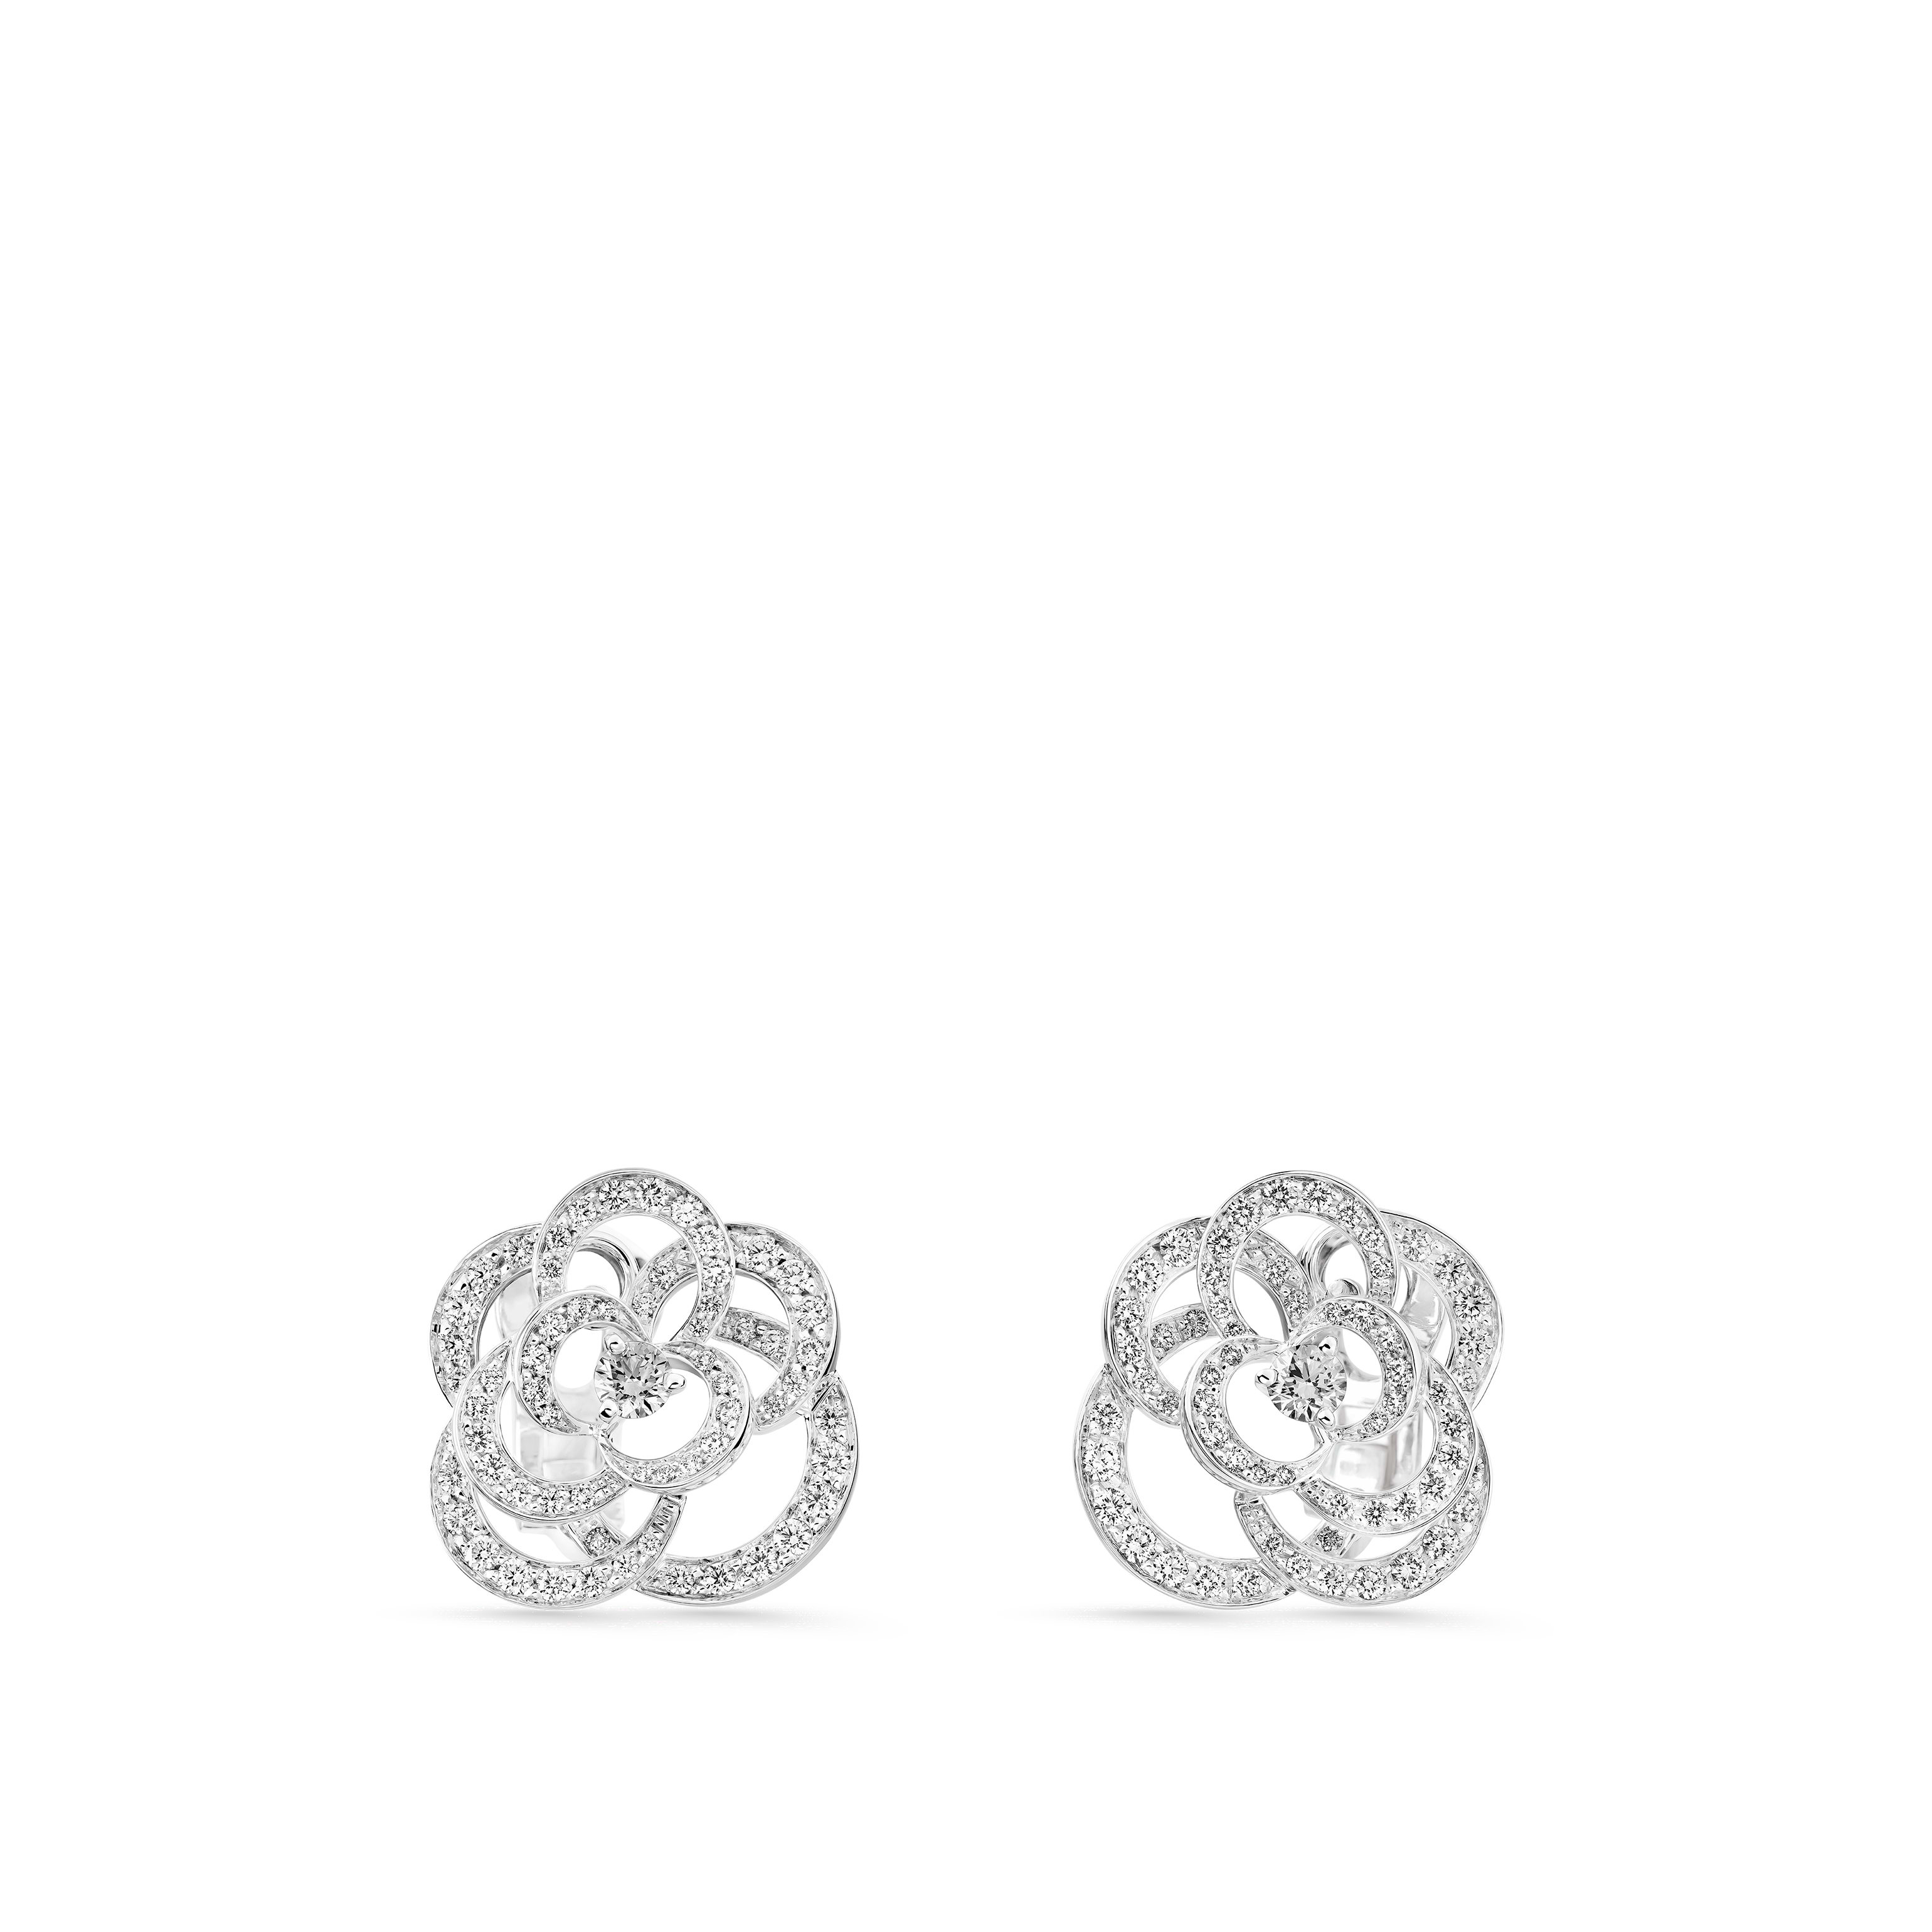 Camélia Earrings - Fil de Camélia earrings in 18K white gold, diamonds and central diamond - CHANEL - Default view - see standard sized version